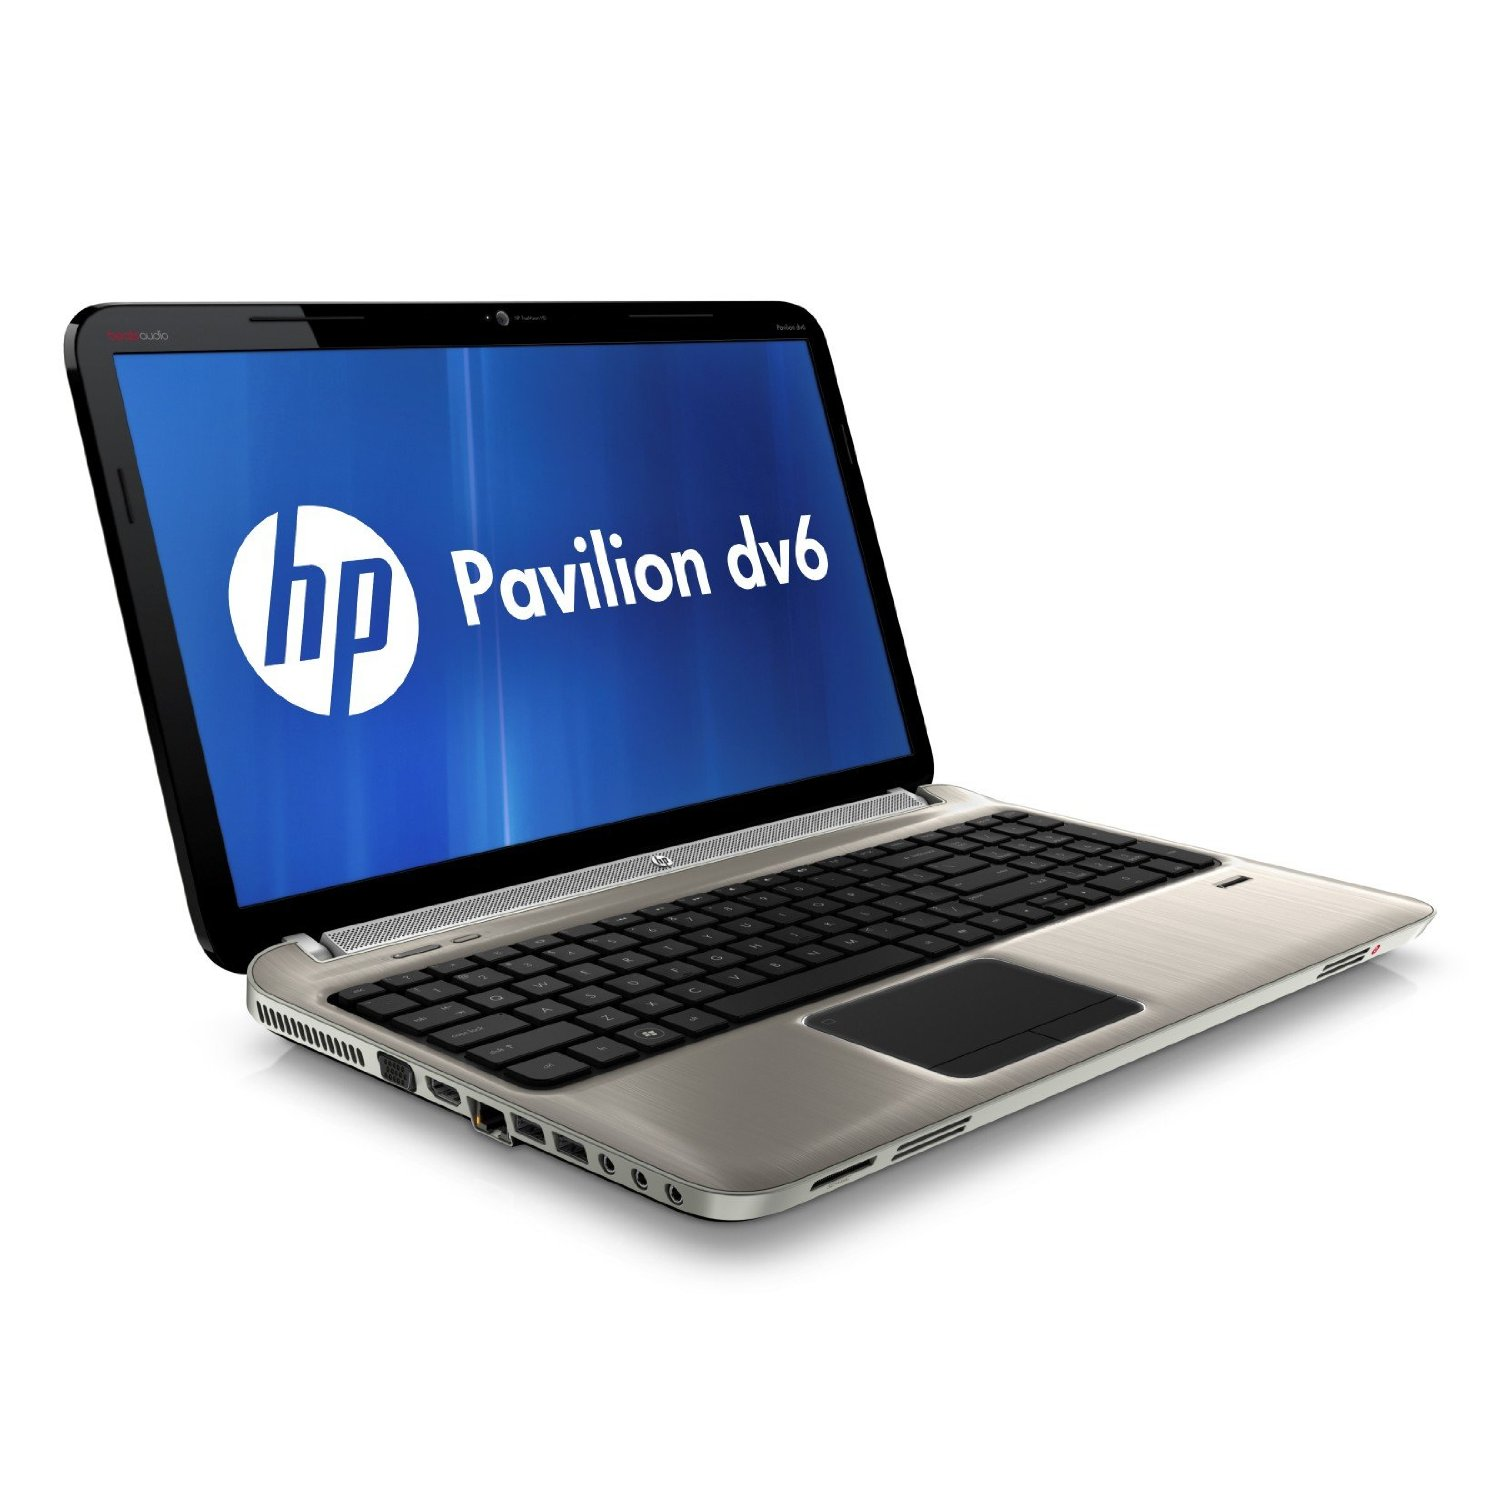 HP dv6-6c10us Drivers Windows 7 64bit Download - Drivers and